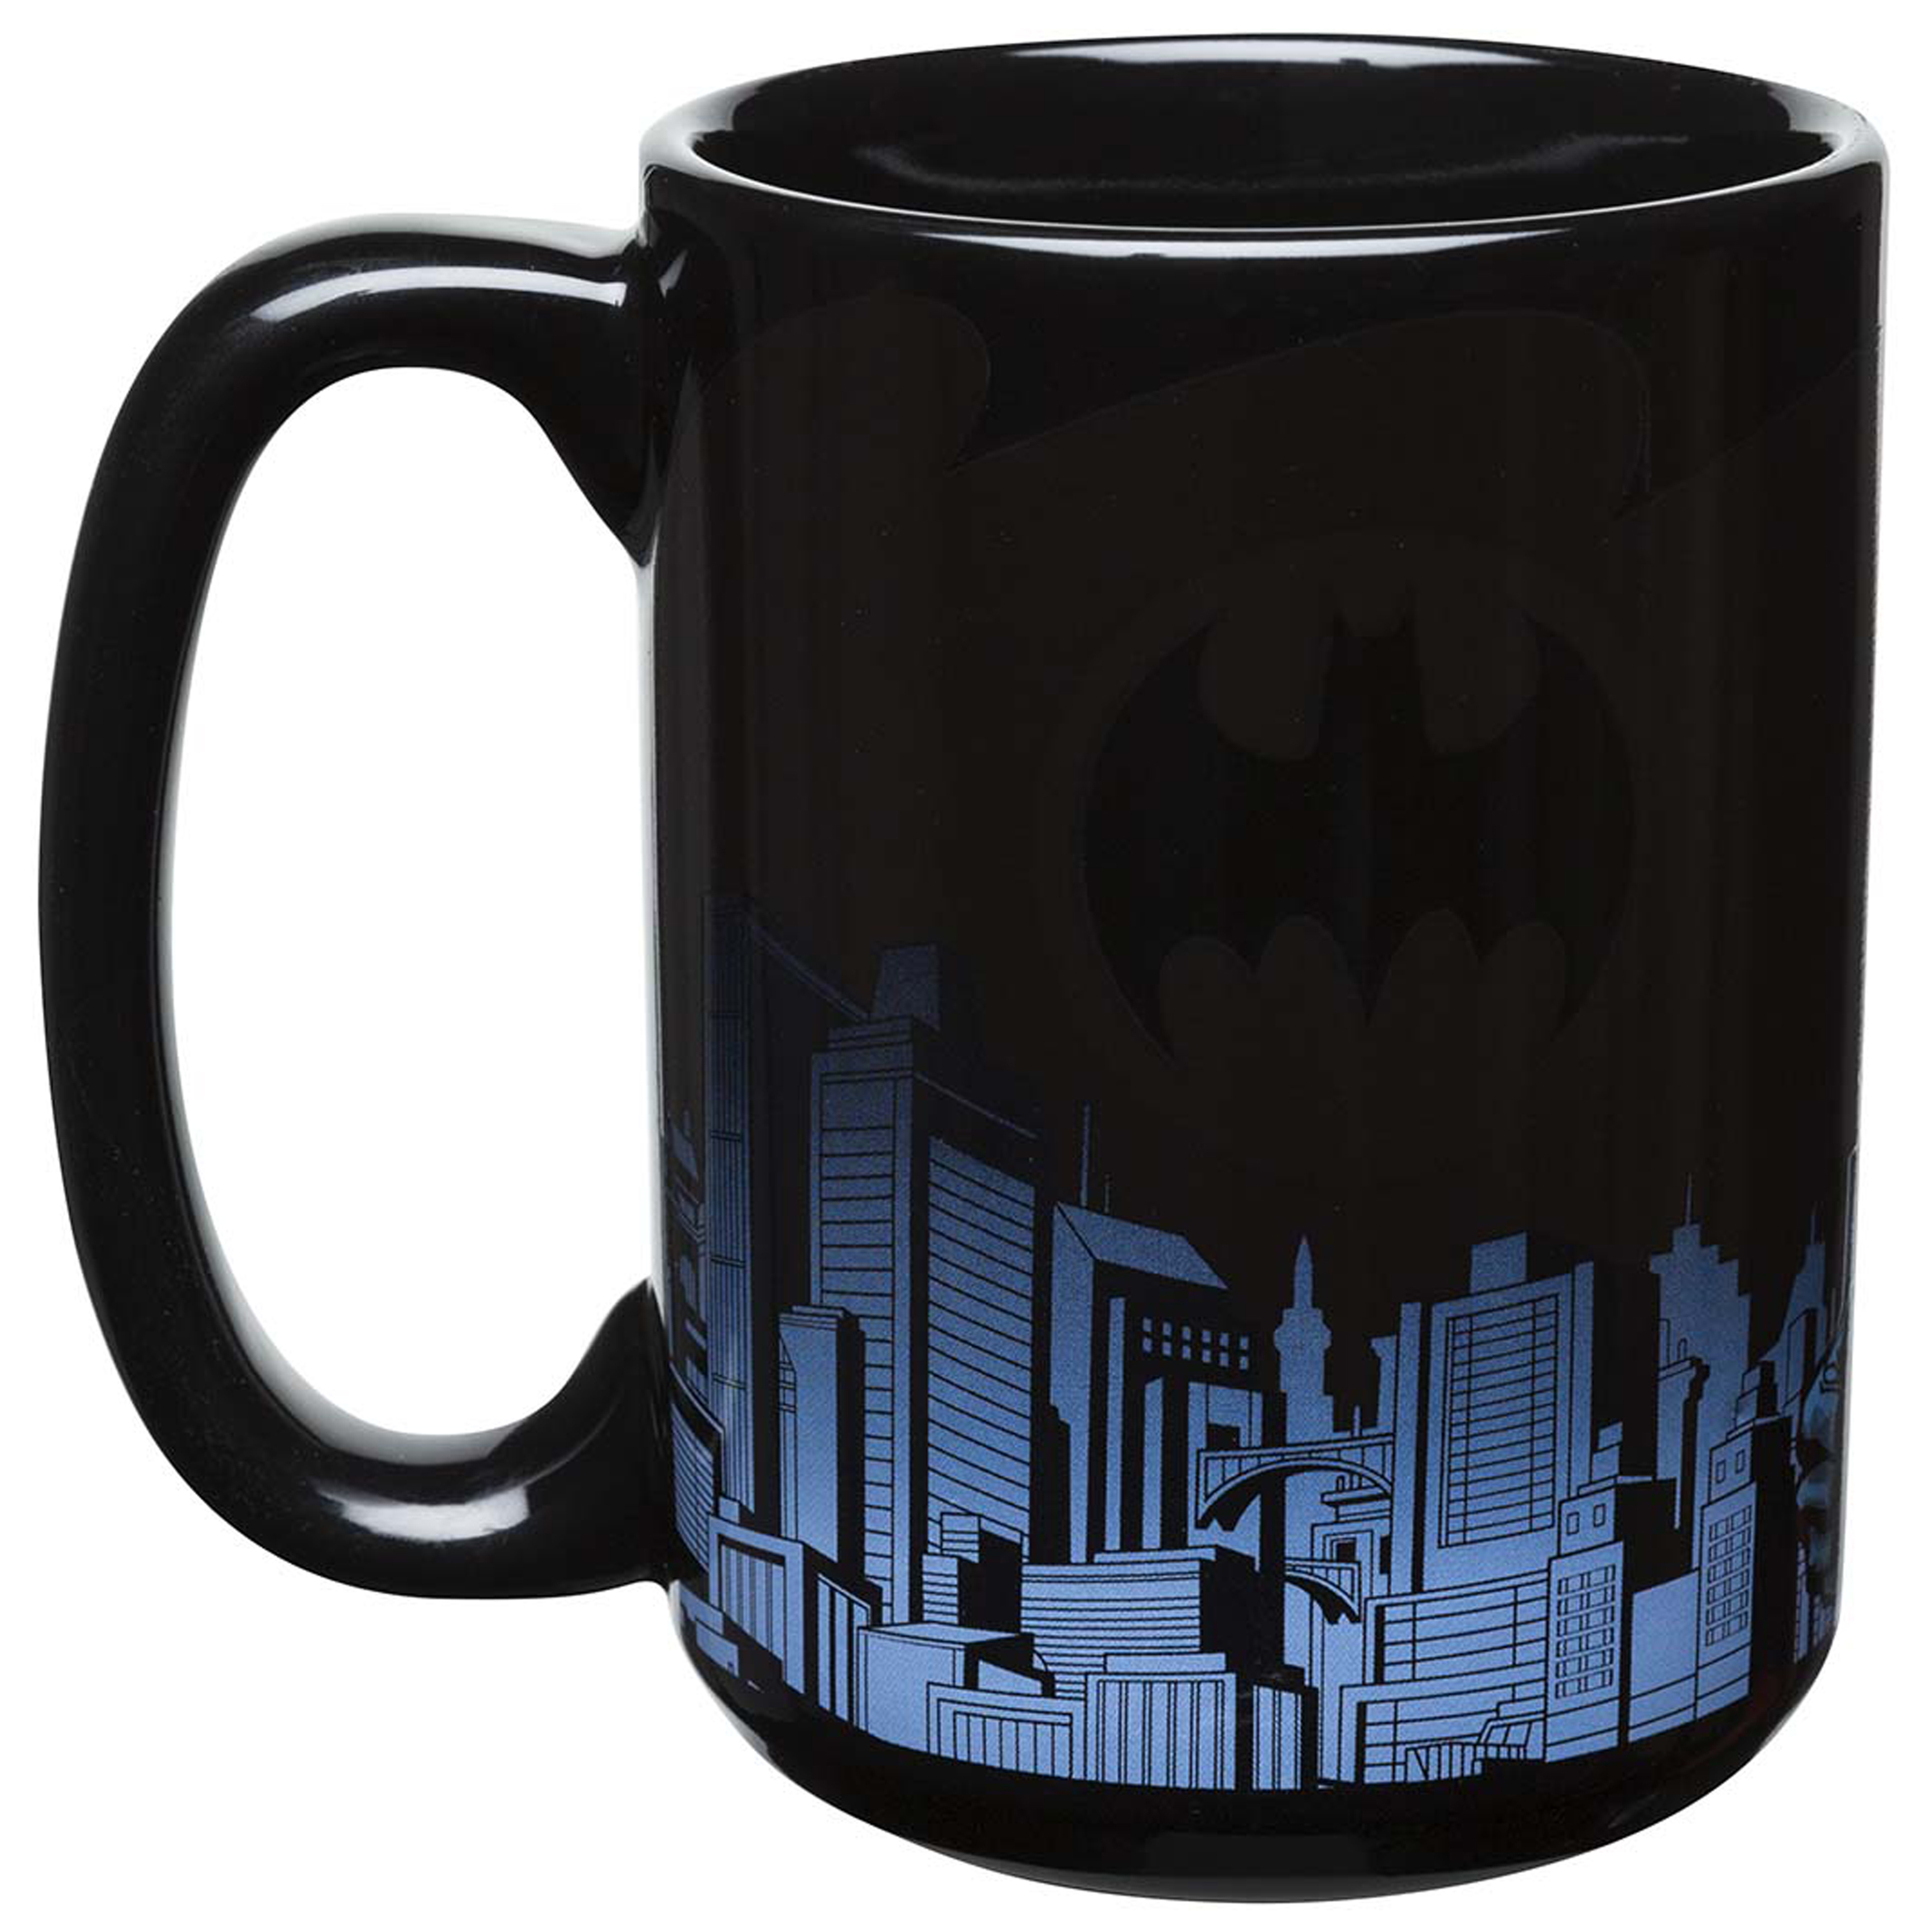 DC Comics 15 oz. Coffee Mug, Batman slideshow image 6